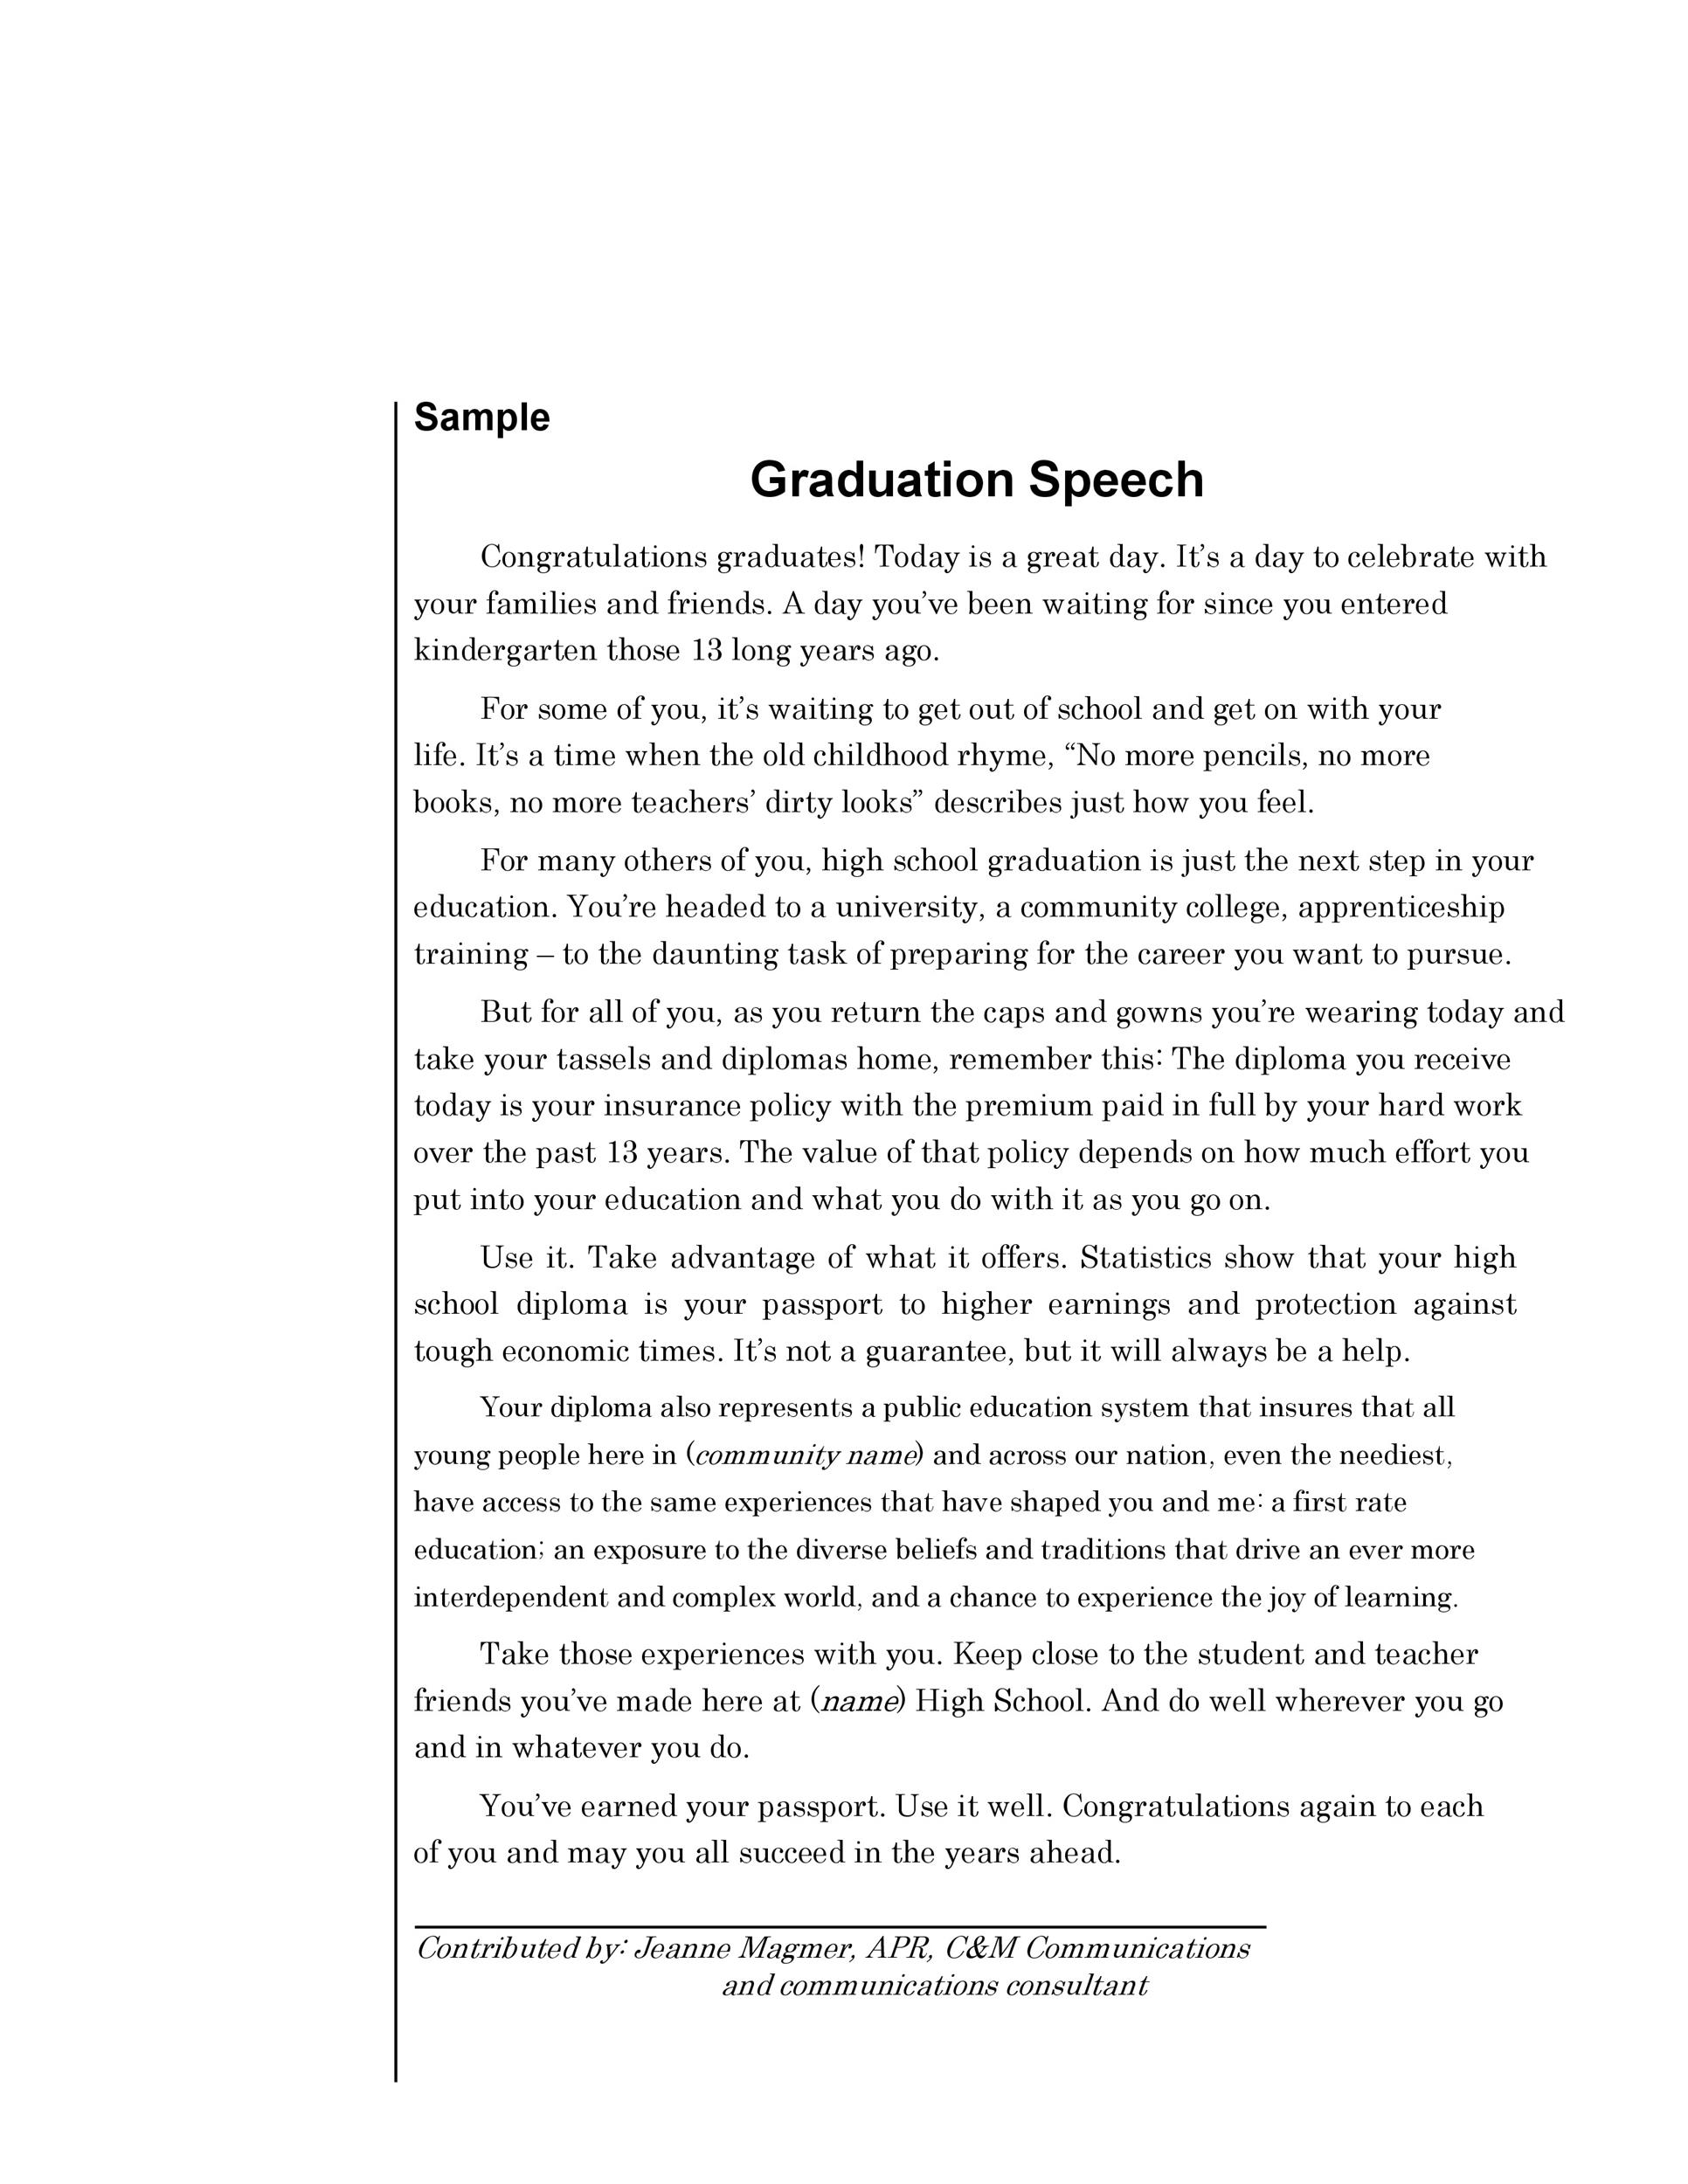 Free graduation speech example 01